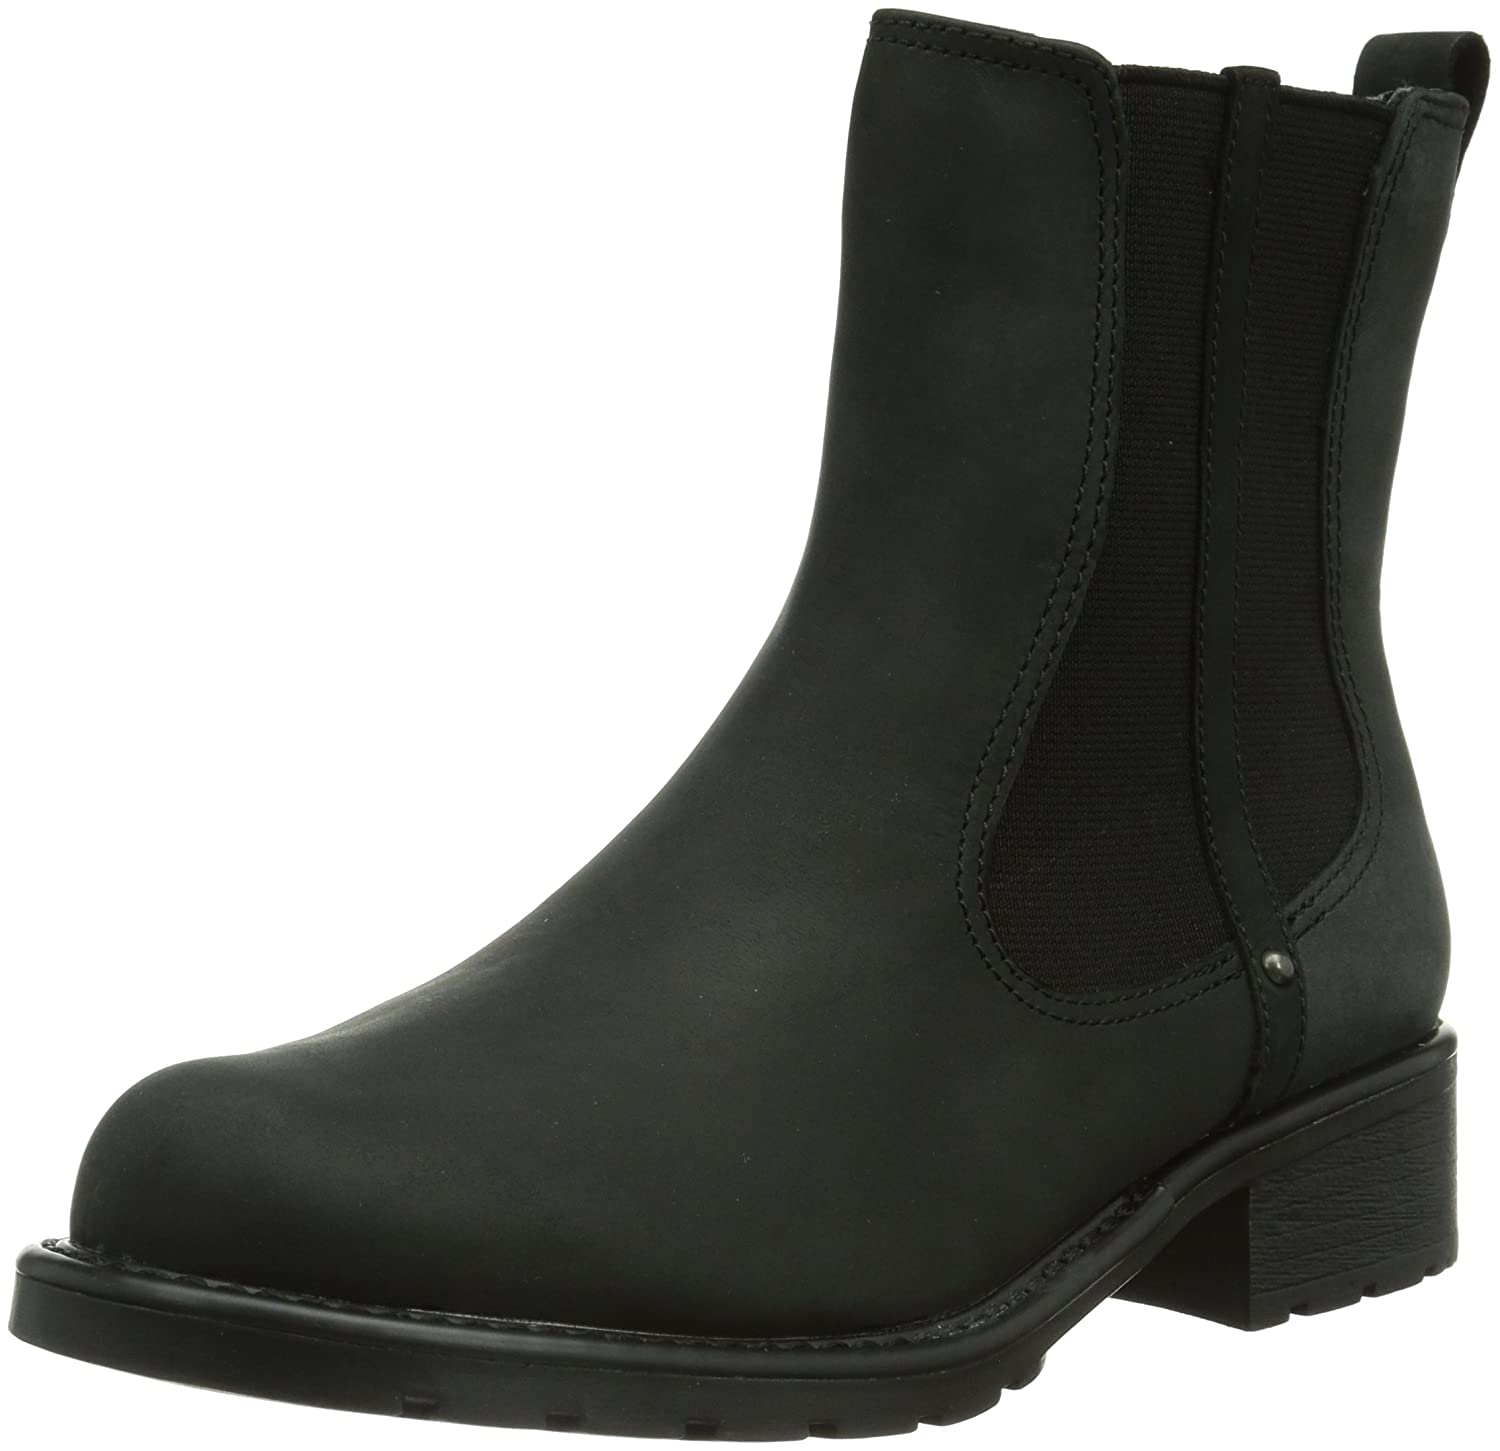 Clarks Orinoco Hot, Women's Boots